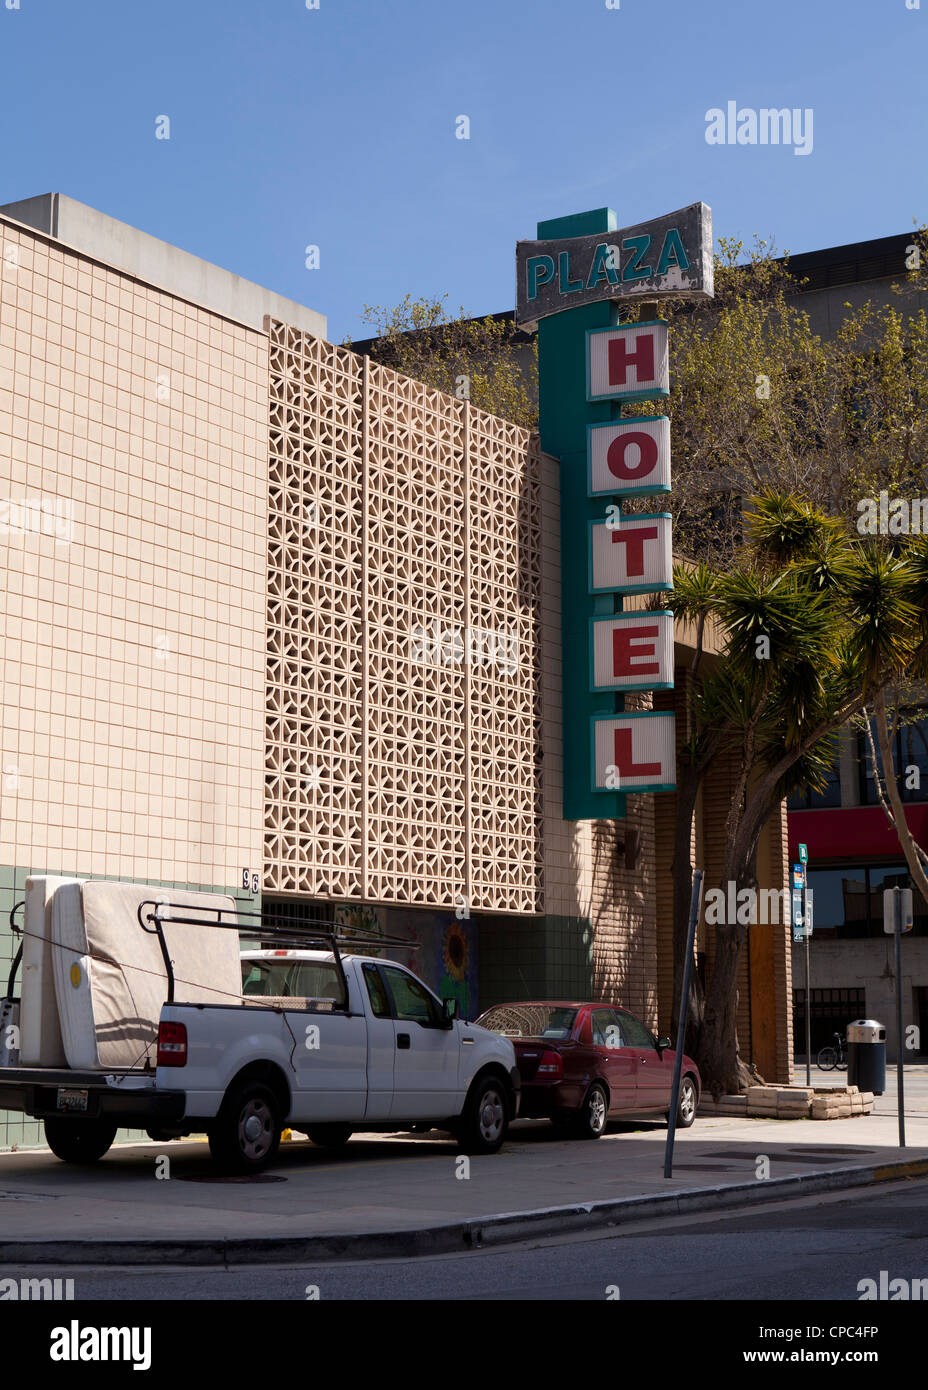 Old motel - Stock Image